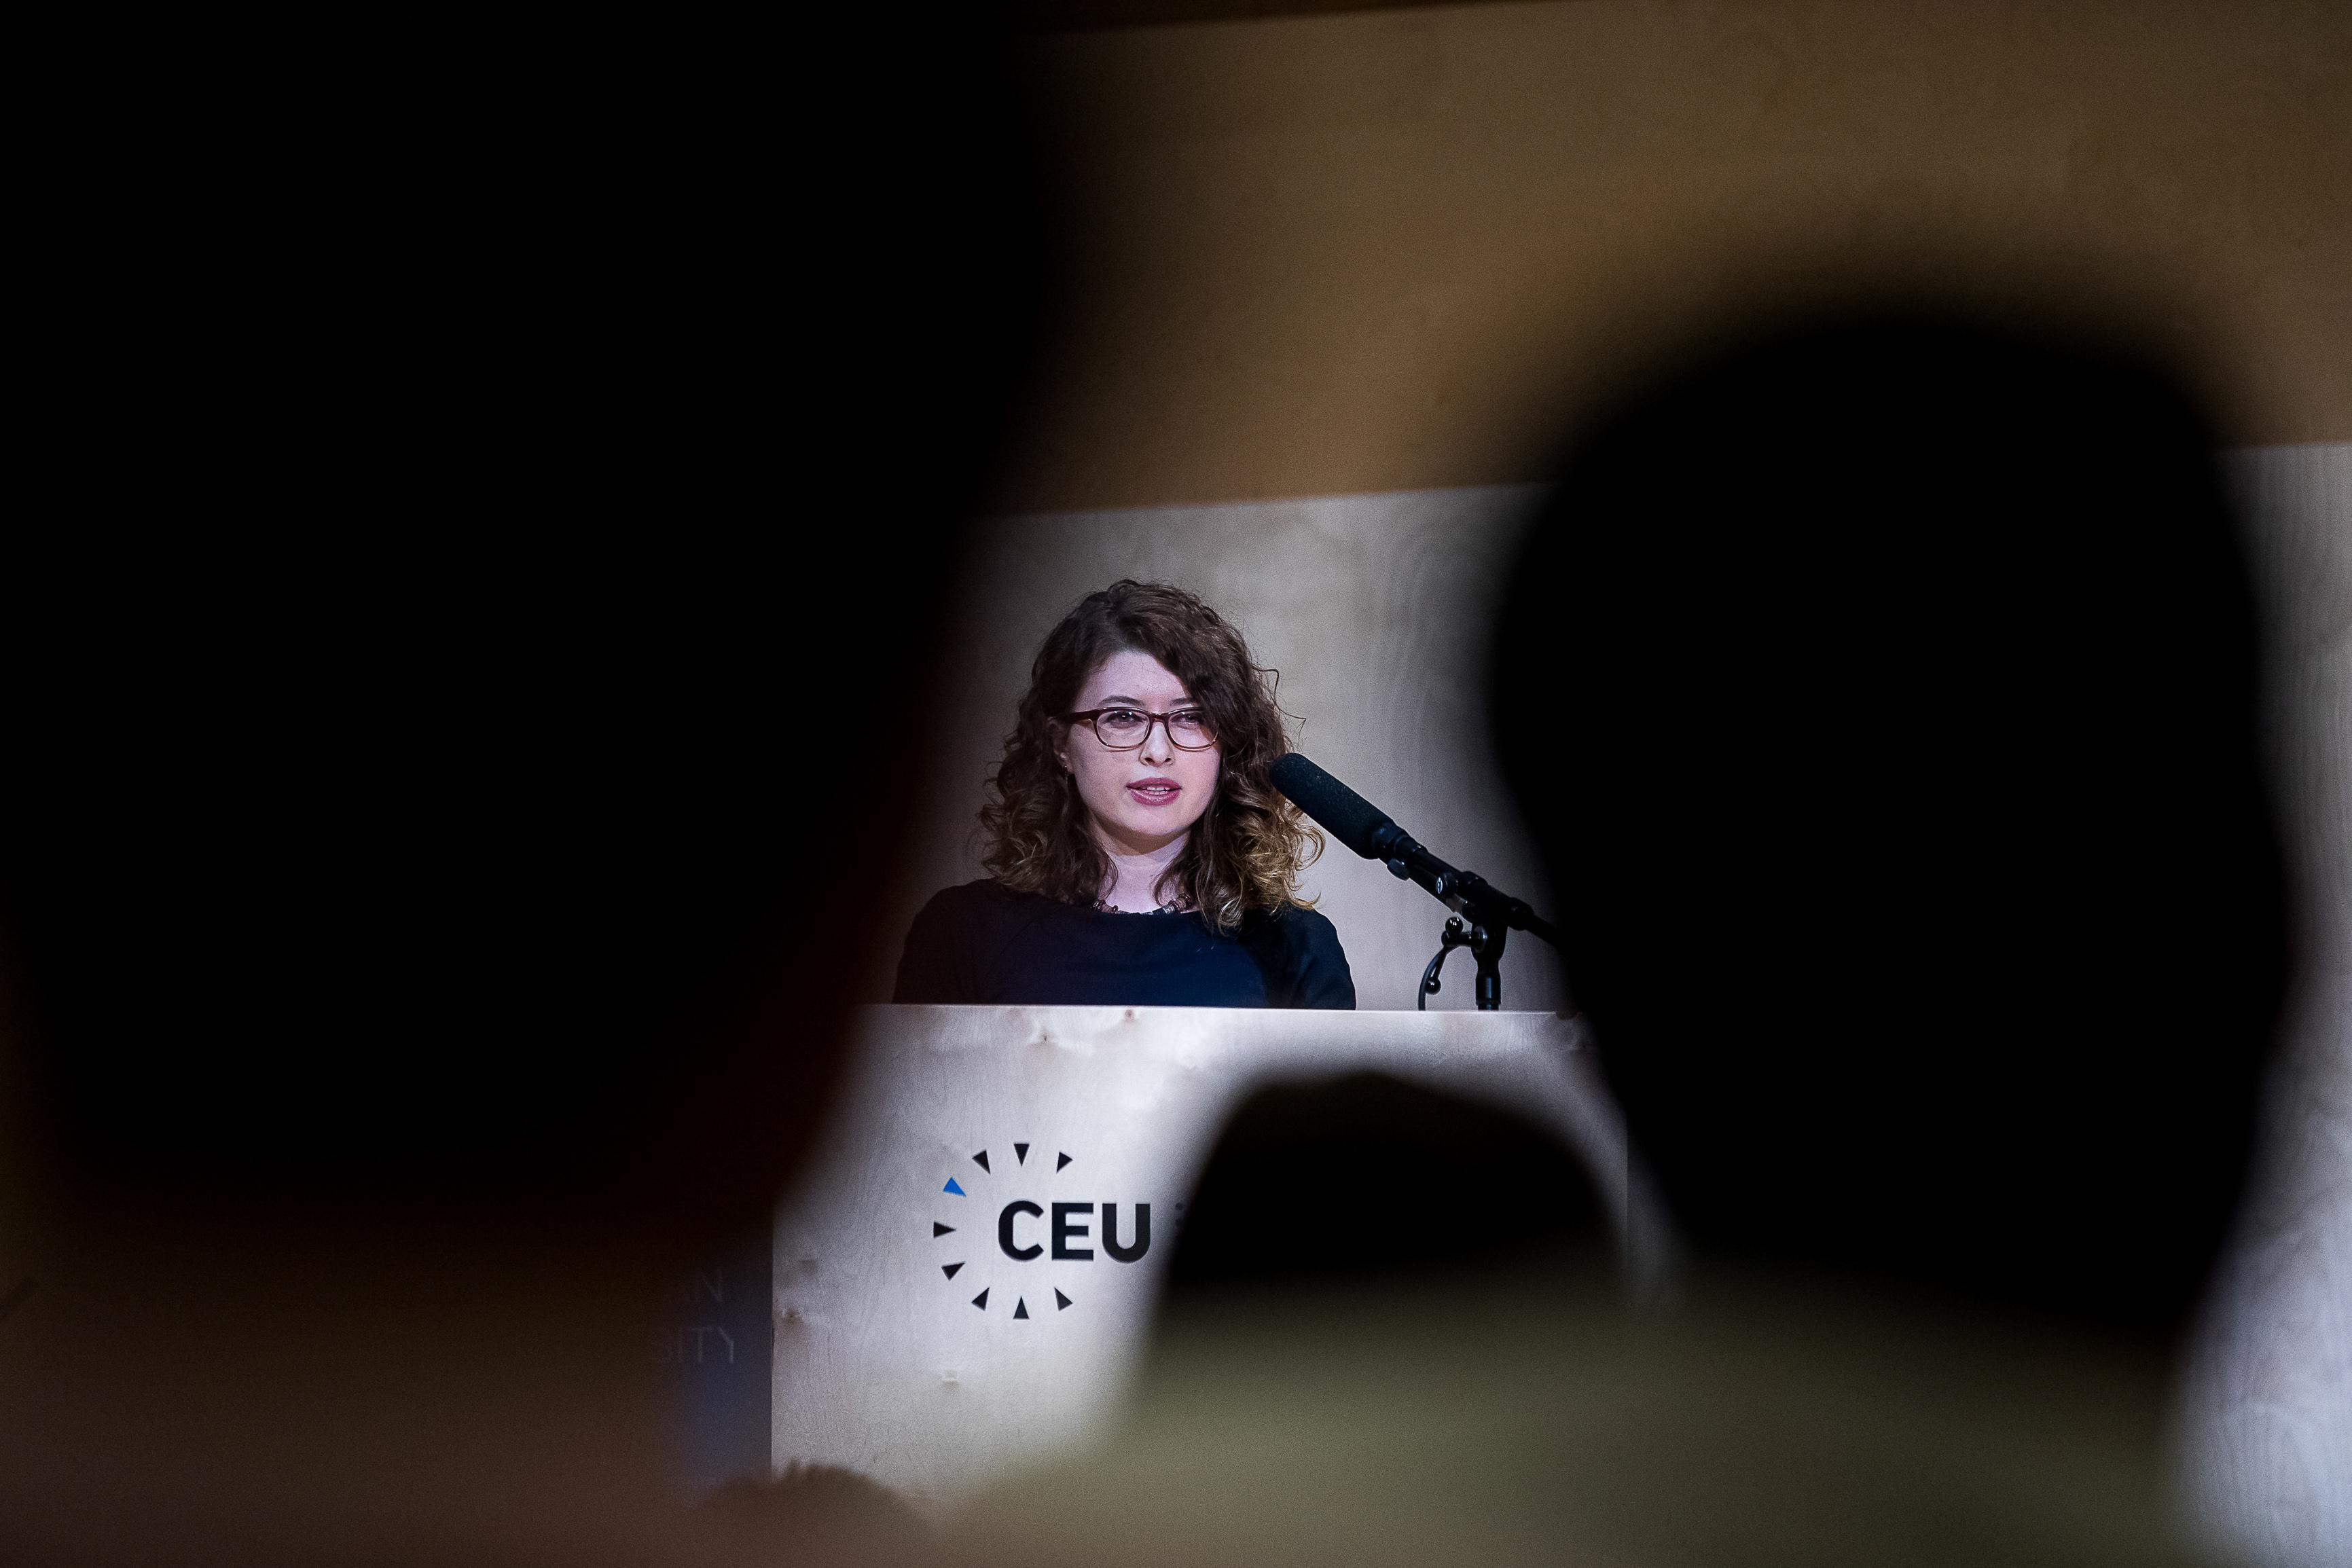 R. Merve Demijkan Aydogan, student at the Department of History is one of CEU's 700 new students in 2018. Image credit: CEU / Zoltan Adrian, Kepszerkesztoseg